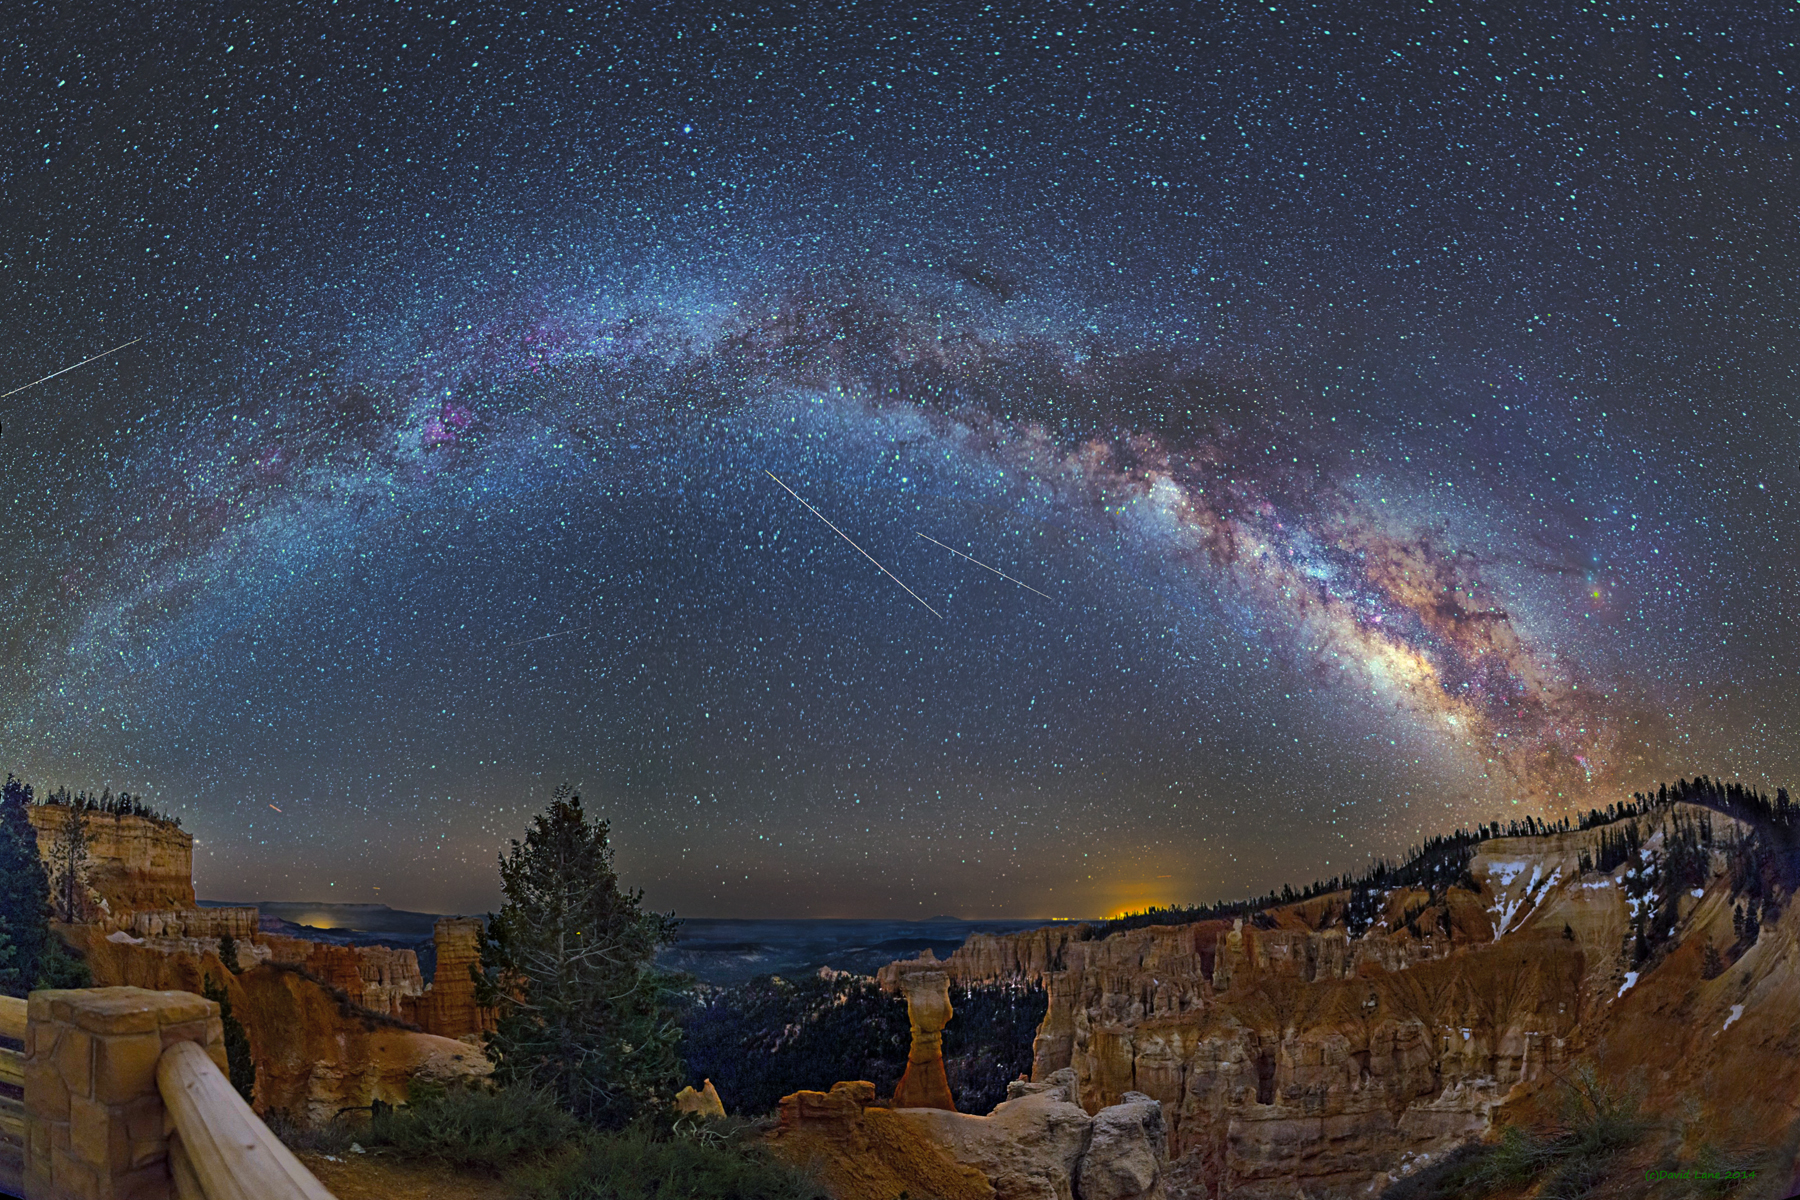 2014 May 19 - Meteors, Planes, and a Galaxy over Bryce Canyon